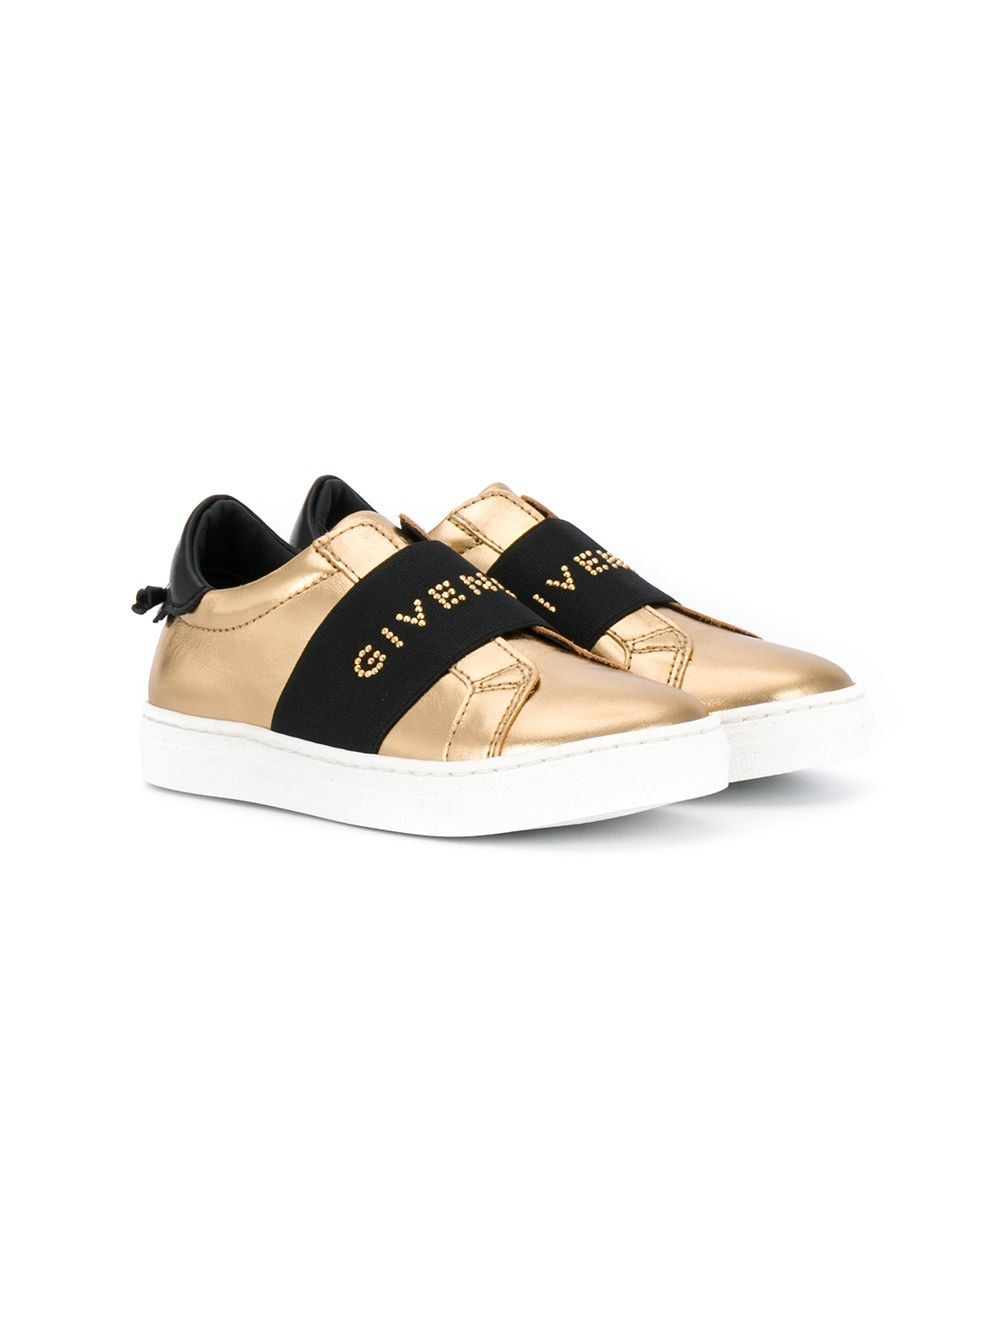 GIVENCHY KIDS Logo Strap Sneaker Gold/White